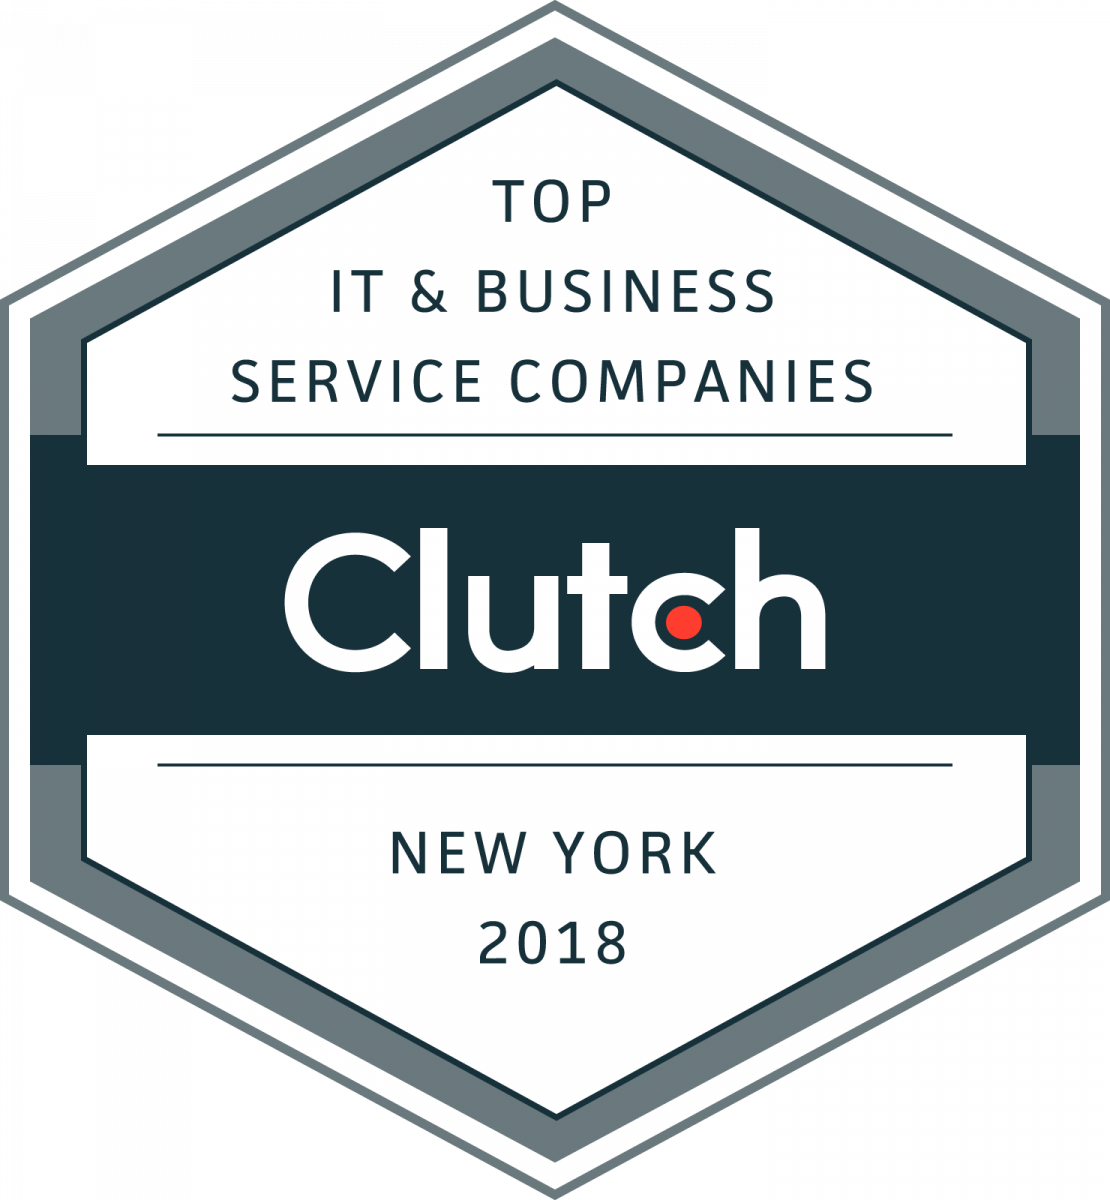 Top IT & Business Service Companies, New York